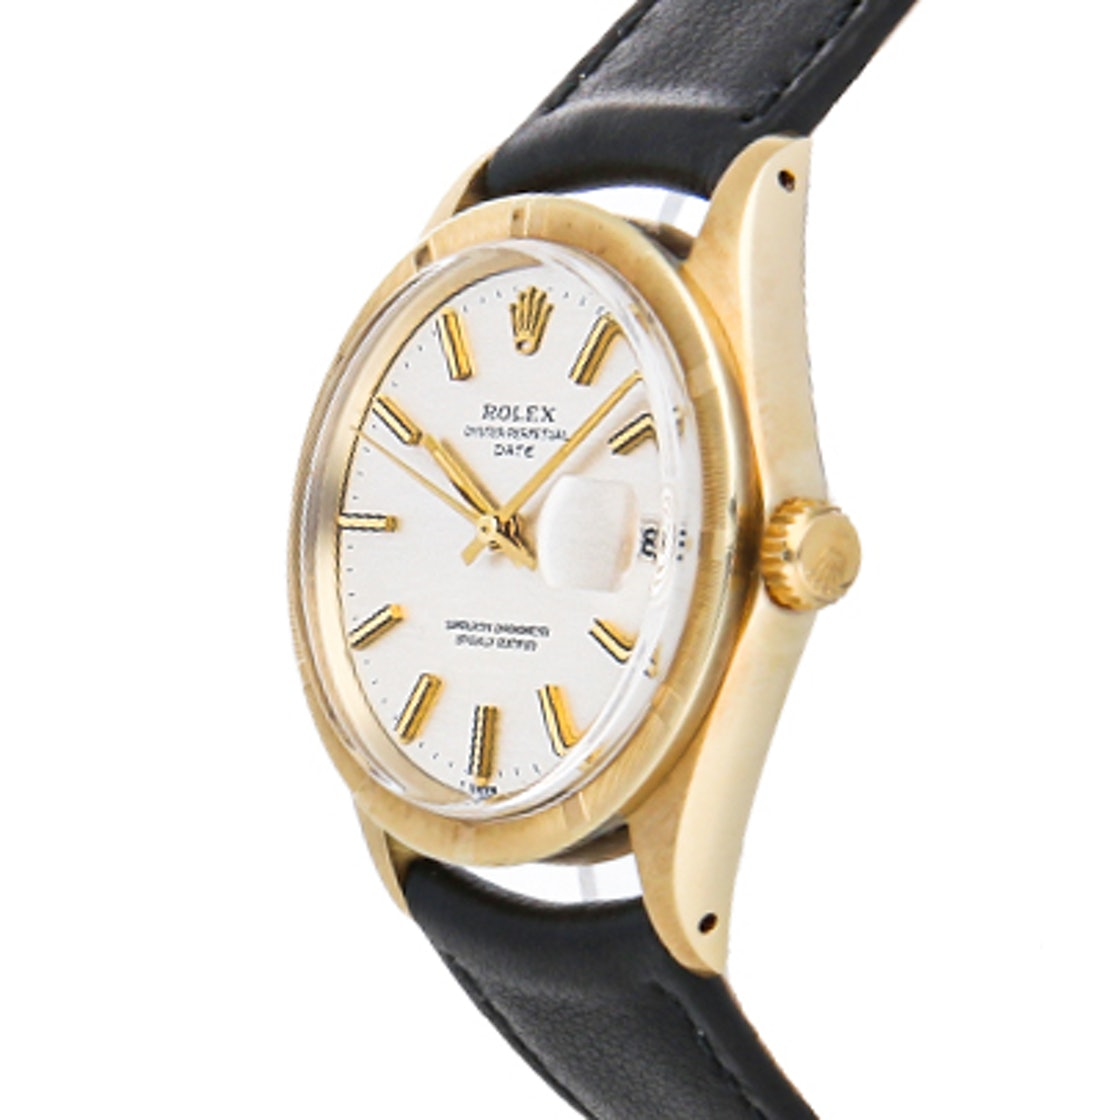 Rolex Vintage Oyster Perpetual Date 1501